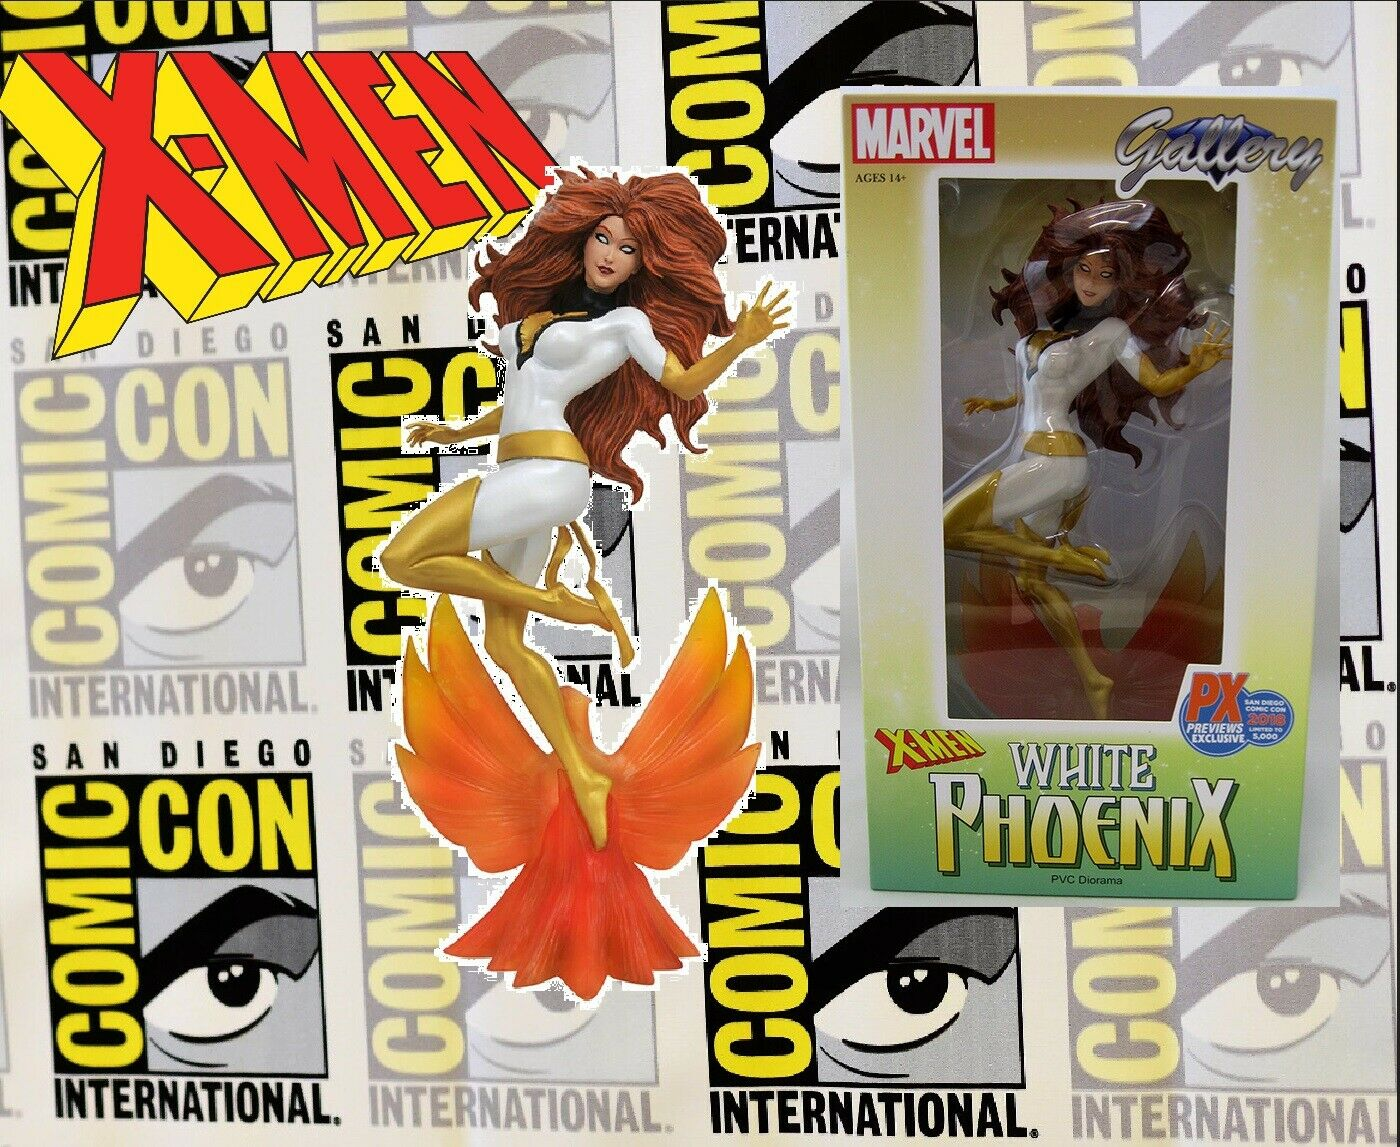 Diamond Select Gallery Gallery Gallery - Marvel X-Men Sdcc 2018 - White Phoenix PVC Diorama fab2f1